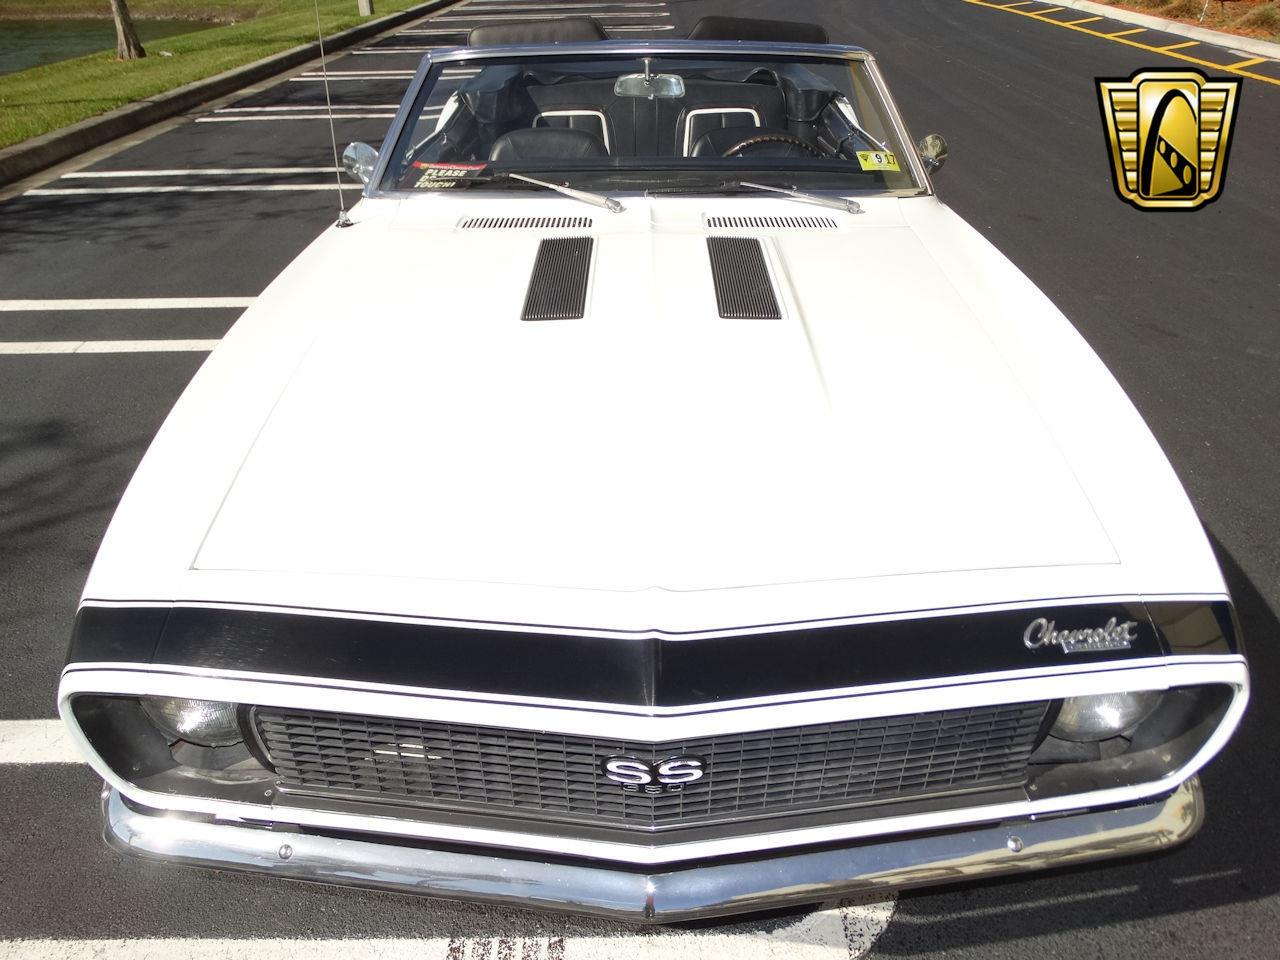 Large Picture of Classic '67 Camaro - $39,995.00 Offered by Gateway Classic Cars - Fort Lauderdale - LH15